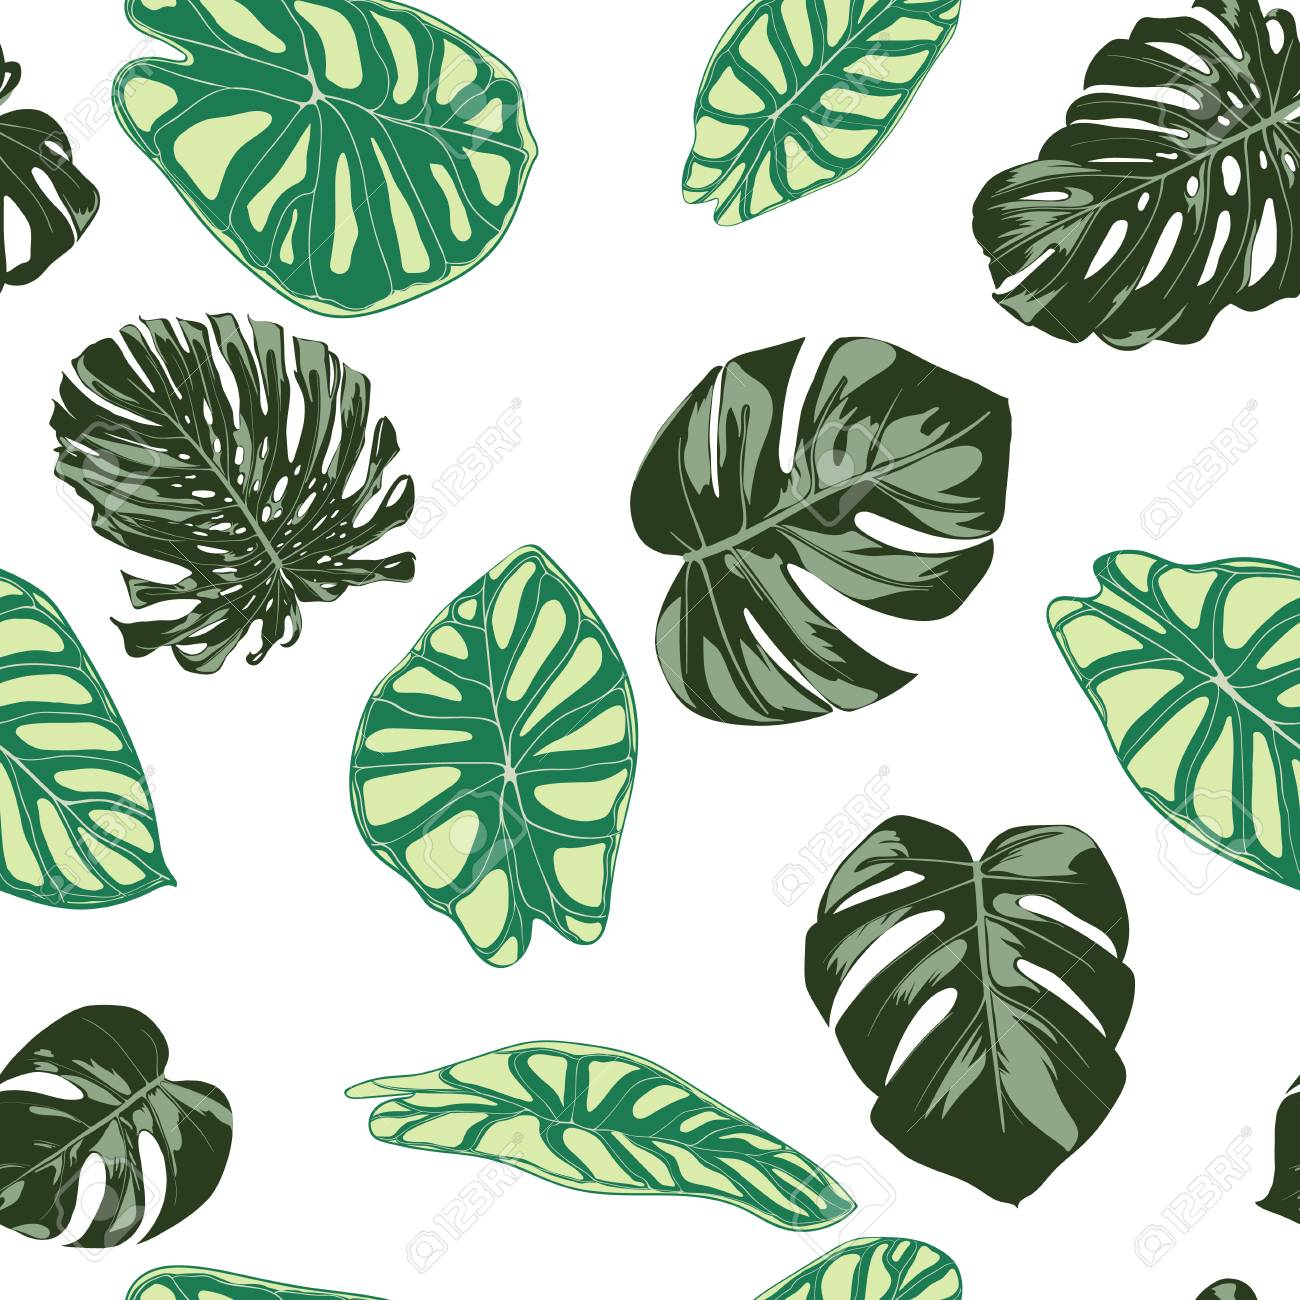 Seamless Exotic Pattern With Tropical Plants Vector Background Royalty Free Cliparts Vectors And Stock Illustration Image 112316655 Line art drawing one continuous lineart of a hand holding minimalist style. seamless exotic pattern with tropical plants vector background